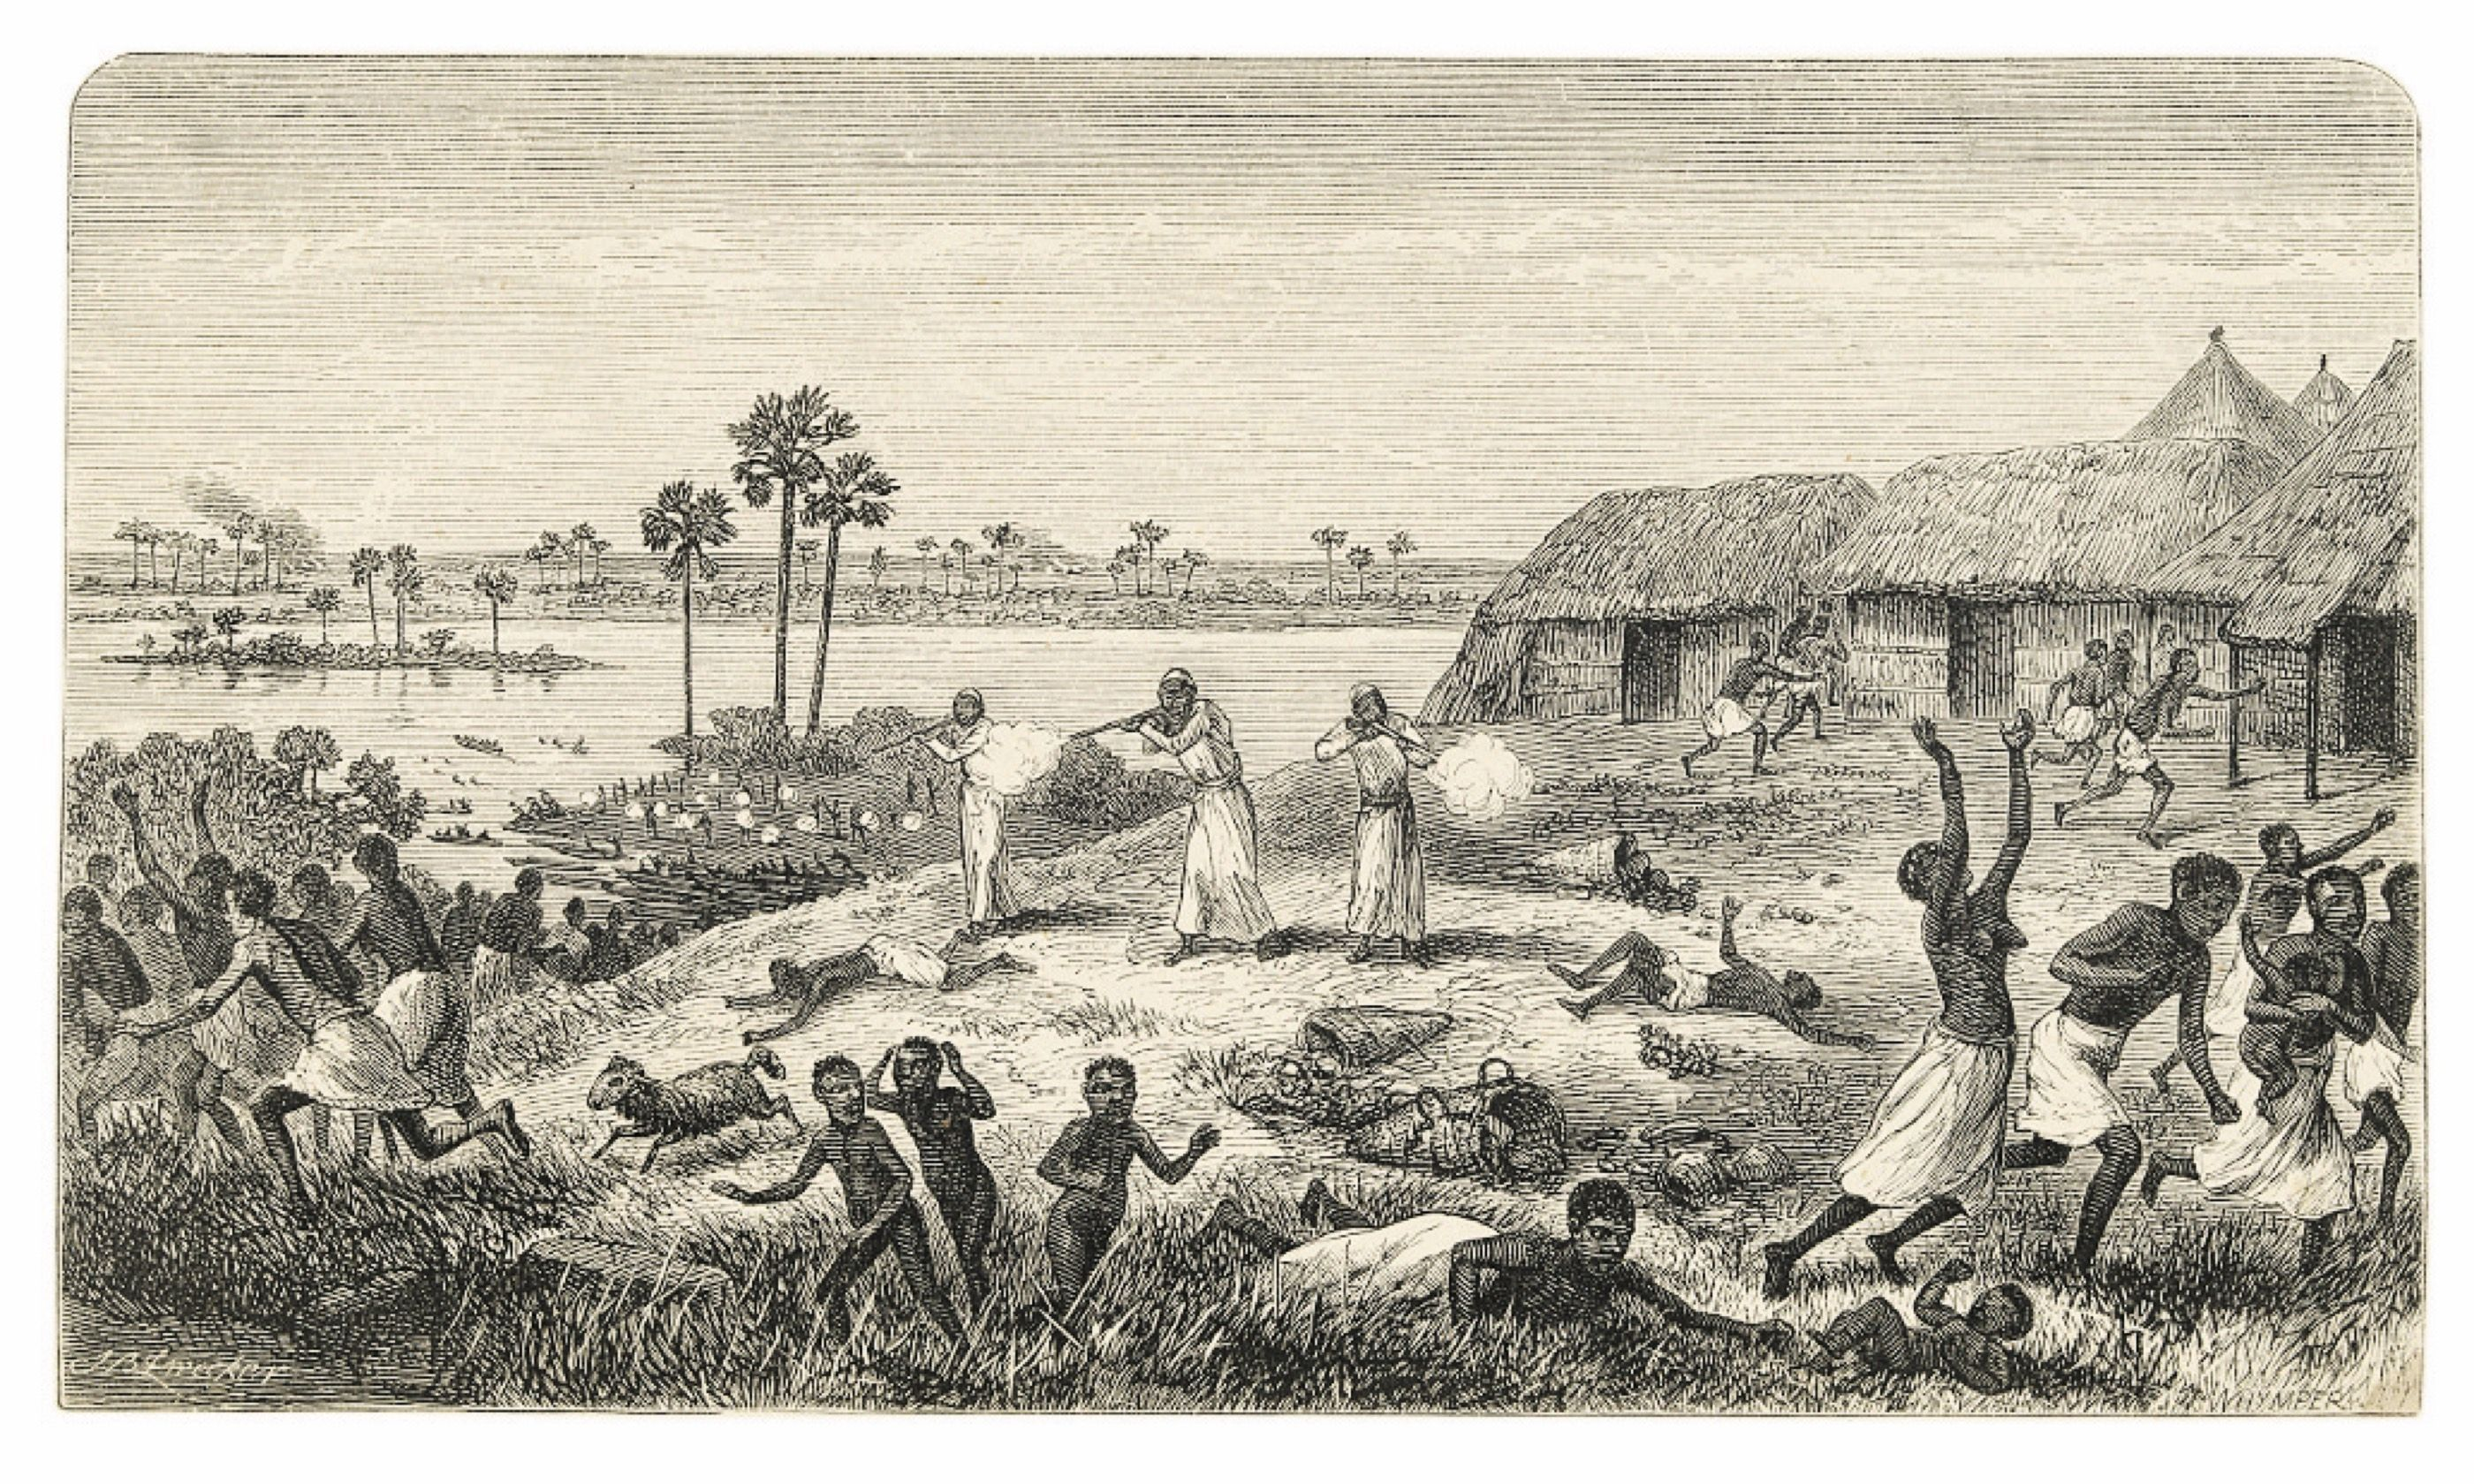 The drawing: Livingstone, D., The Last Journals of David Livingstone in Central Africa (London: John Murray, 1874)